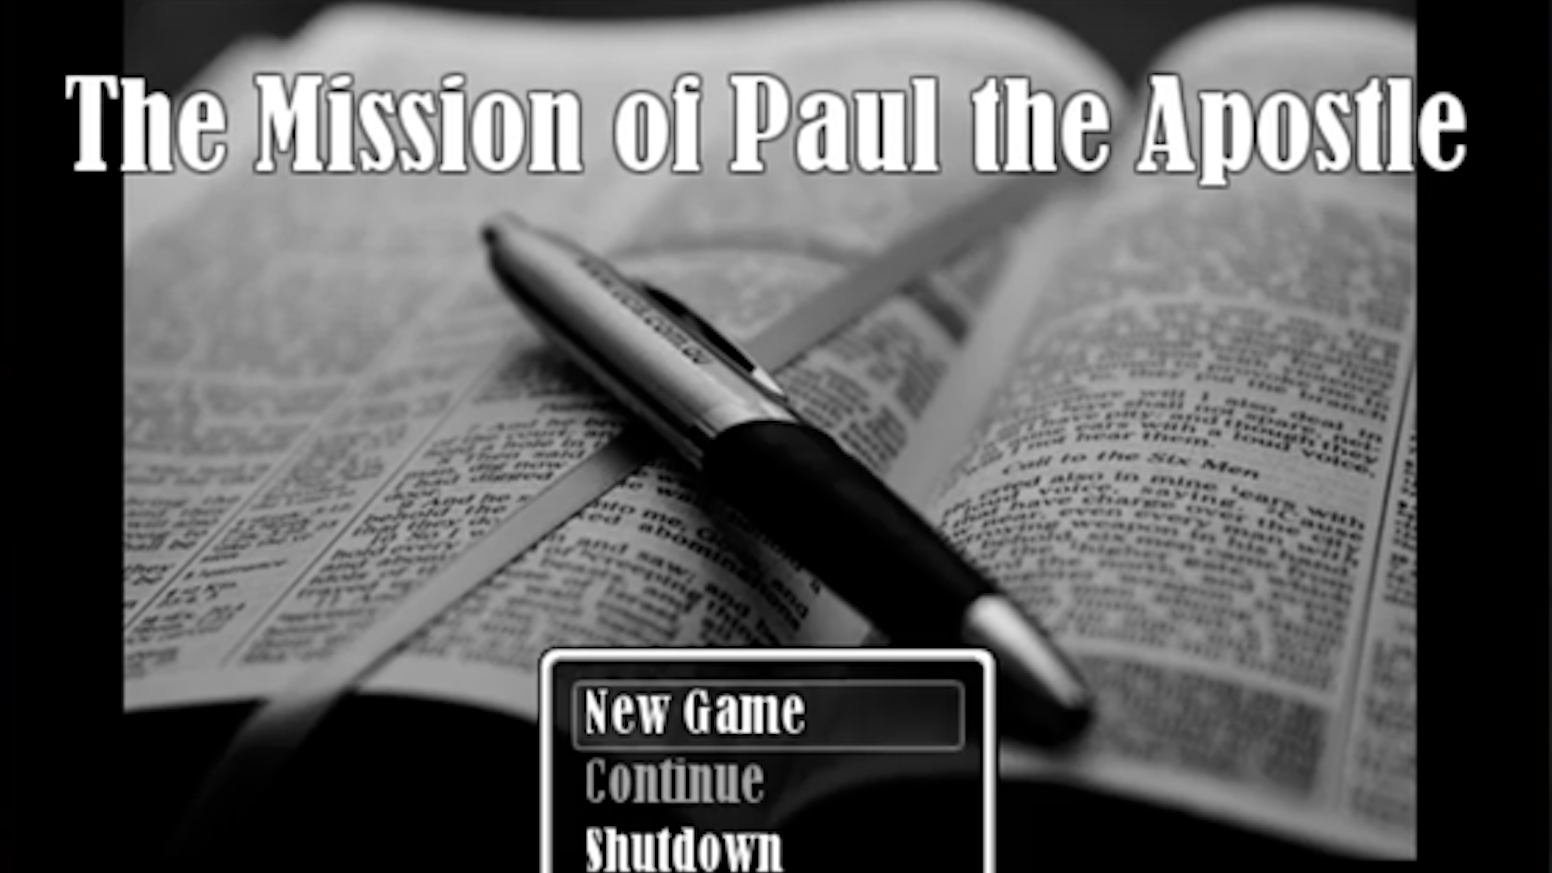 The Mission of Paul the Apostle: A Bible Video Game by Levi